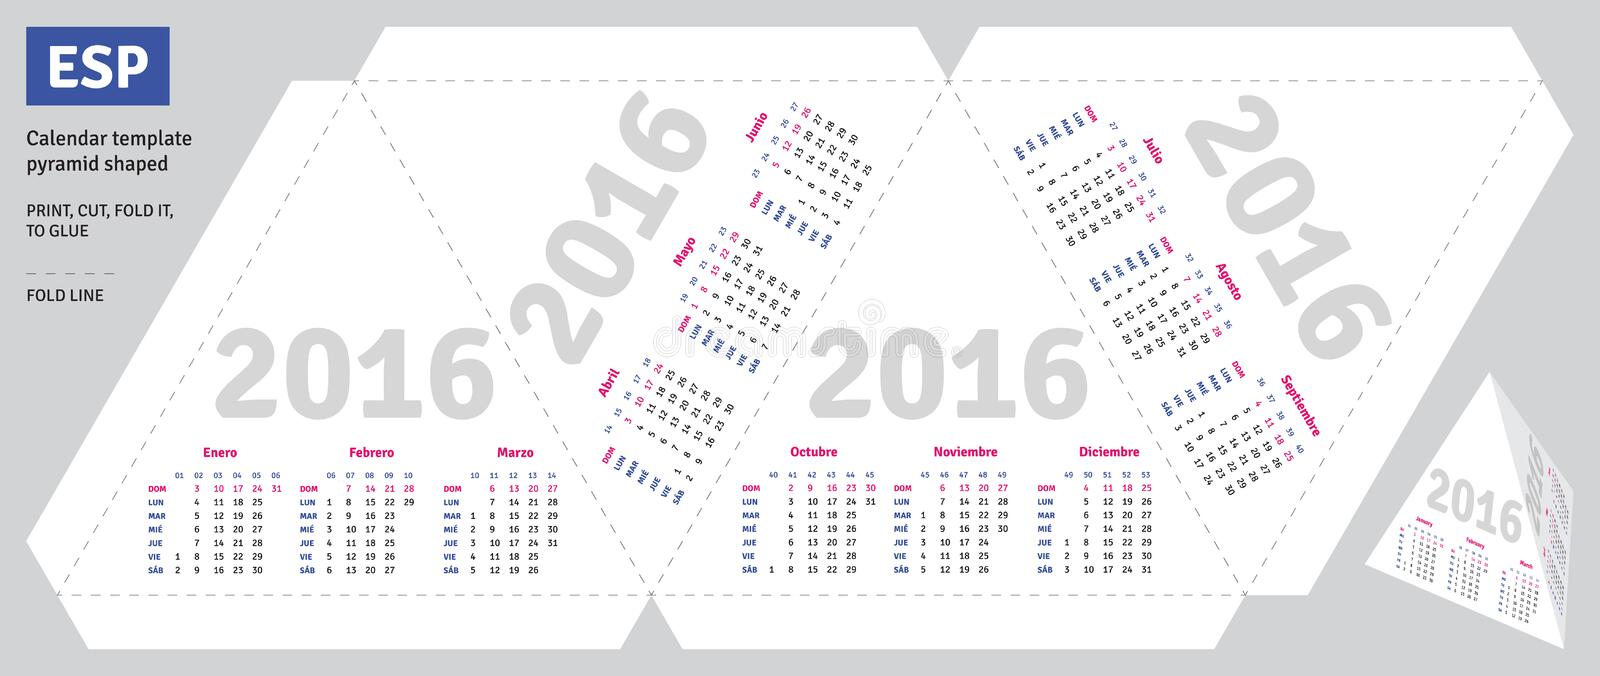 Template Spanish Calendar 2016 Stock Vector Illustration Of Glue